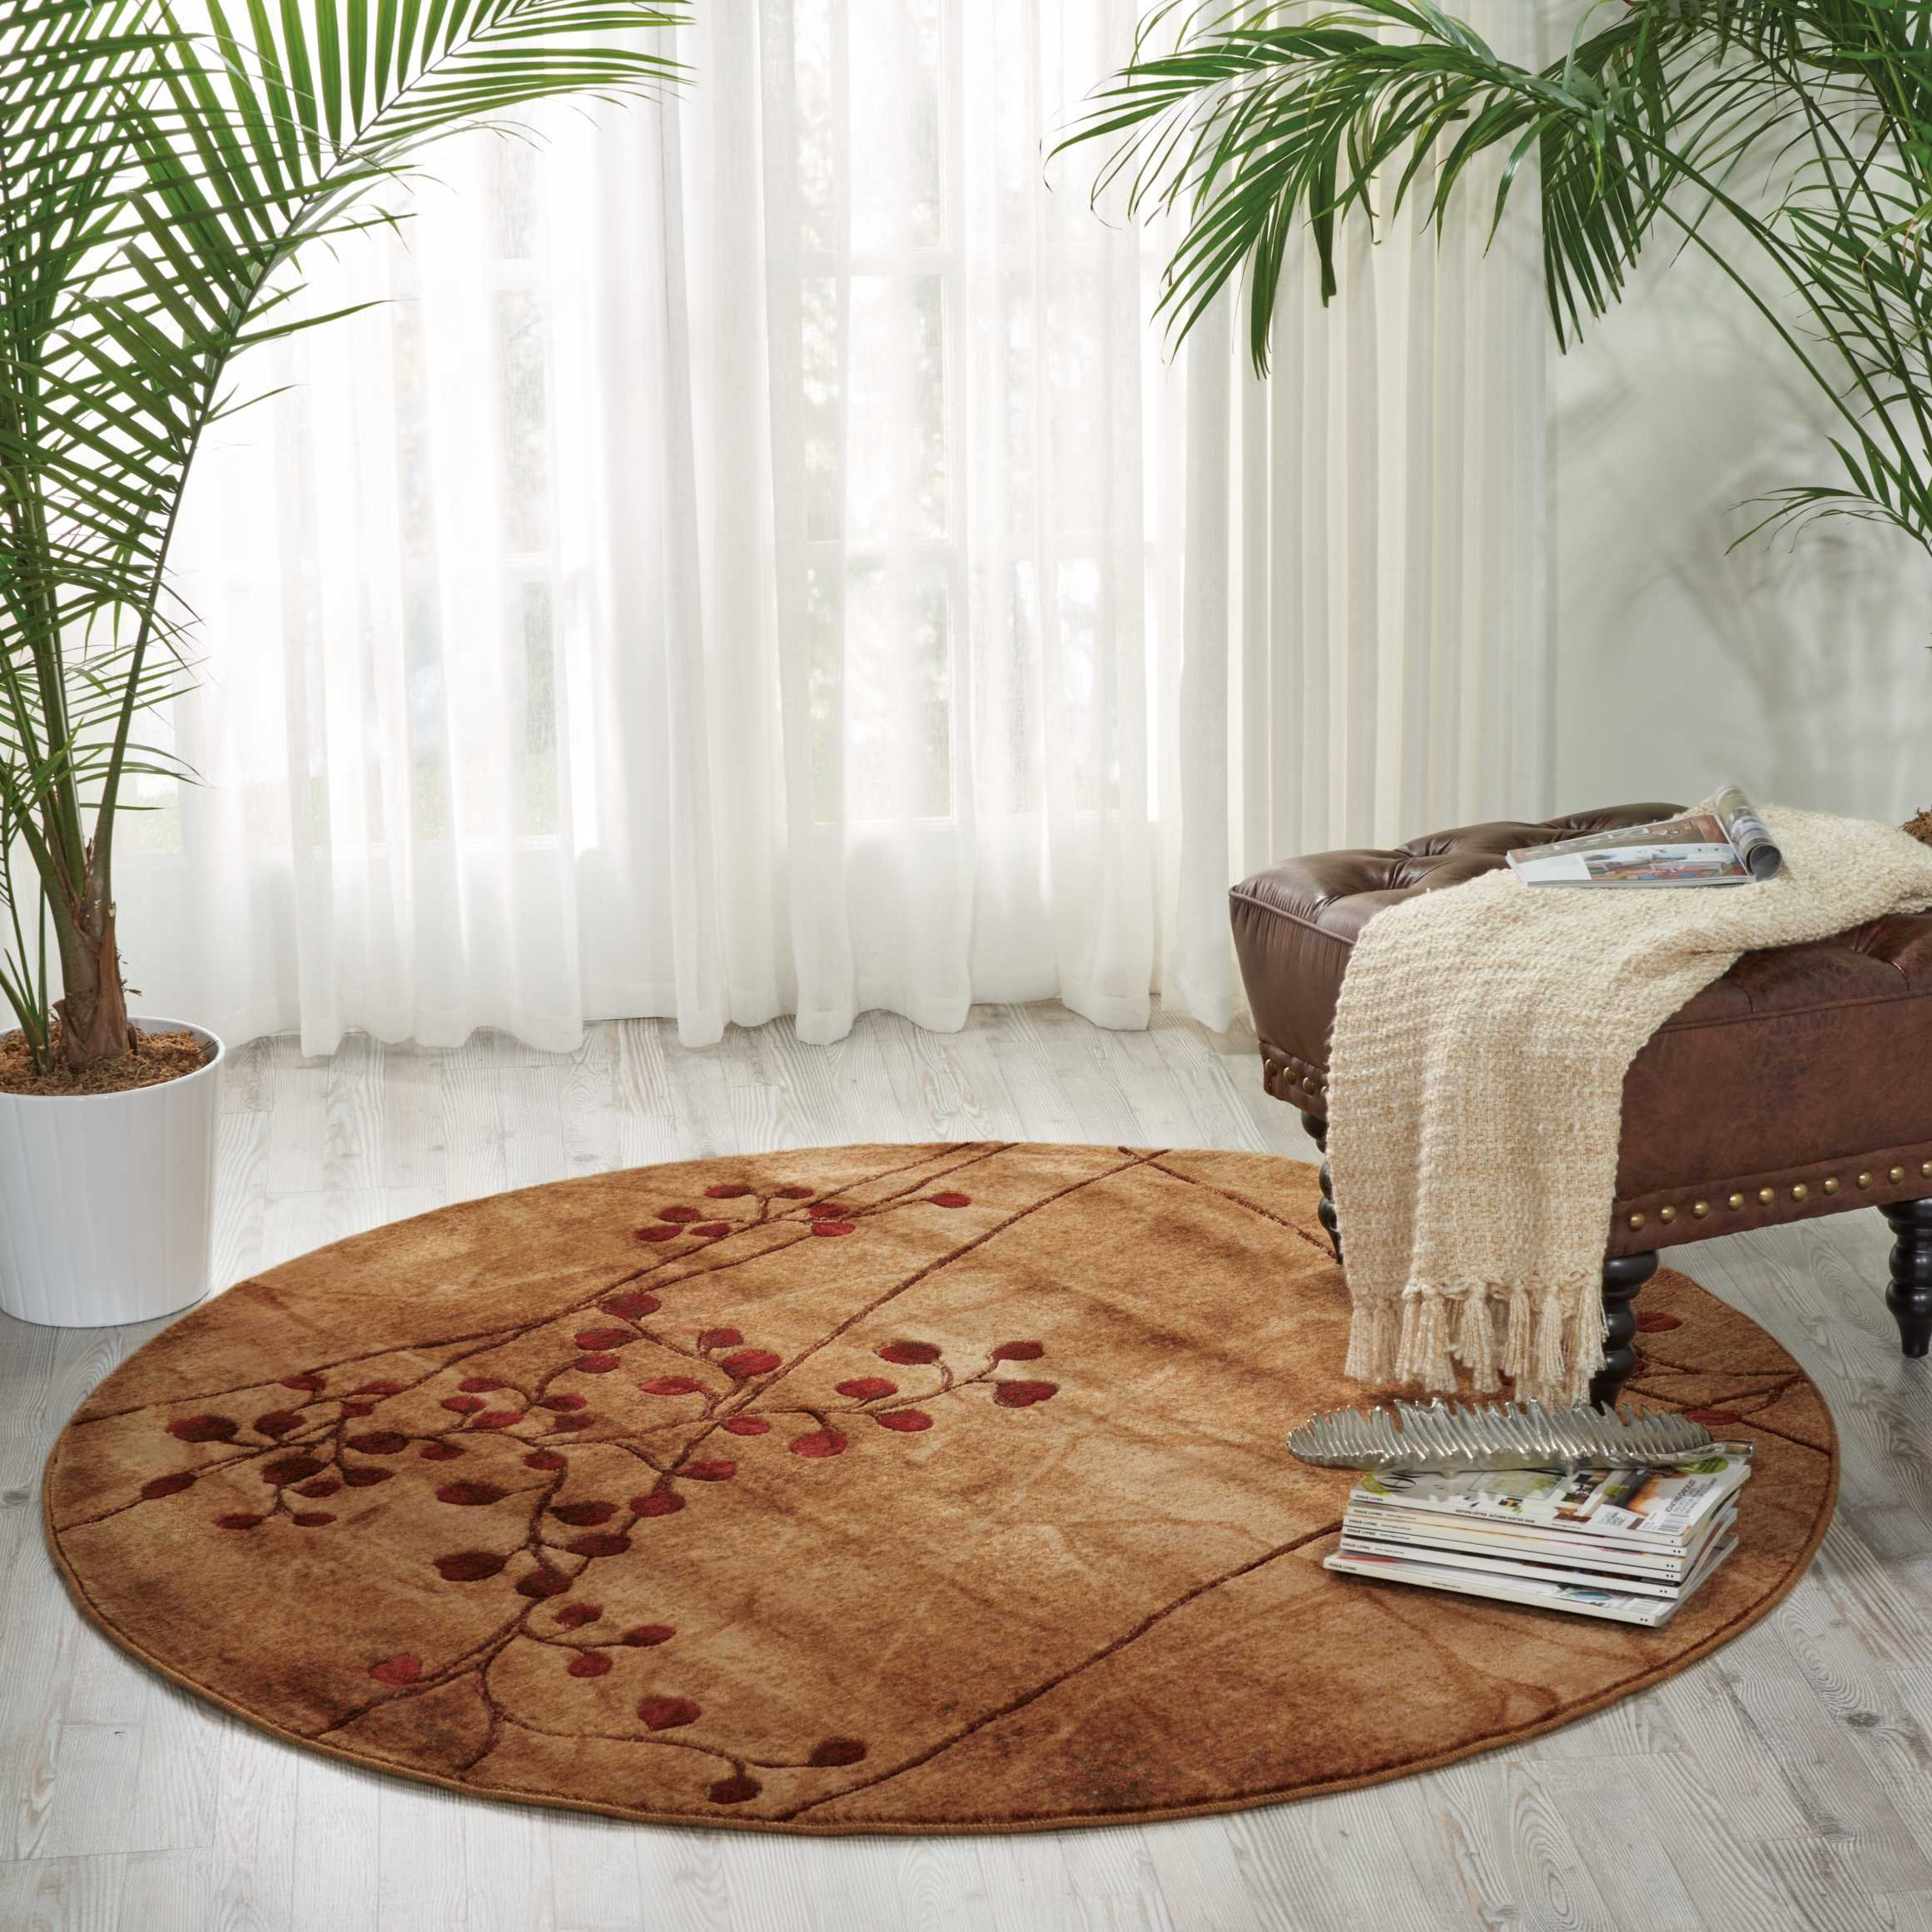 Nourison Somerset (ST74) Latte Round Area Rug, 5-Feet 6-Inches by 5-Feet 6-Inches (5'6'' x 5'6'')